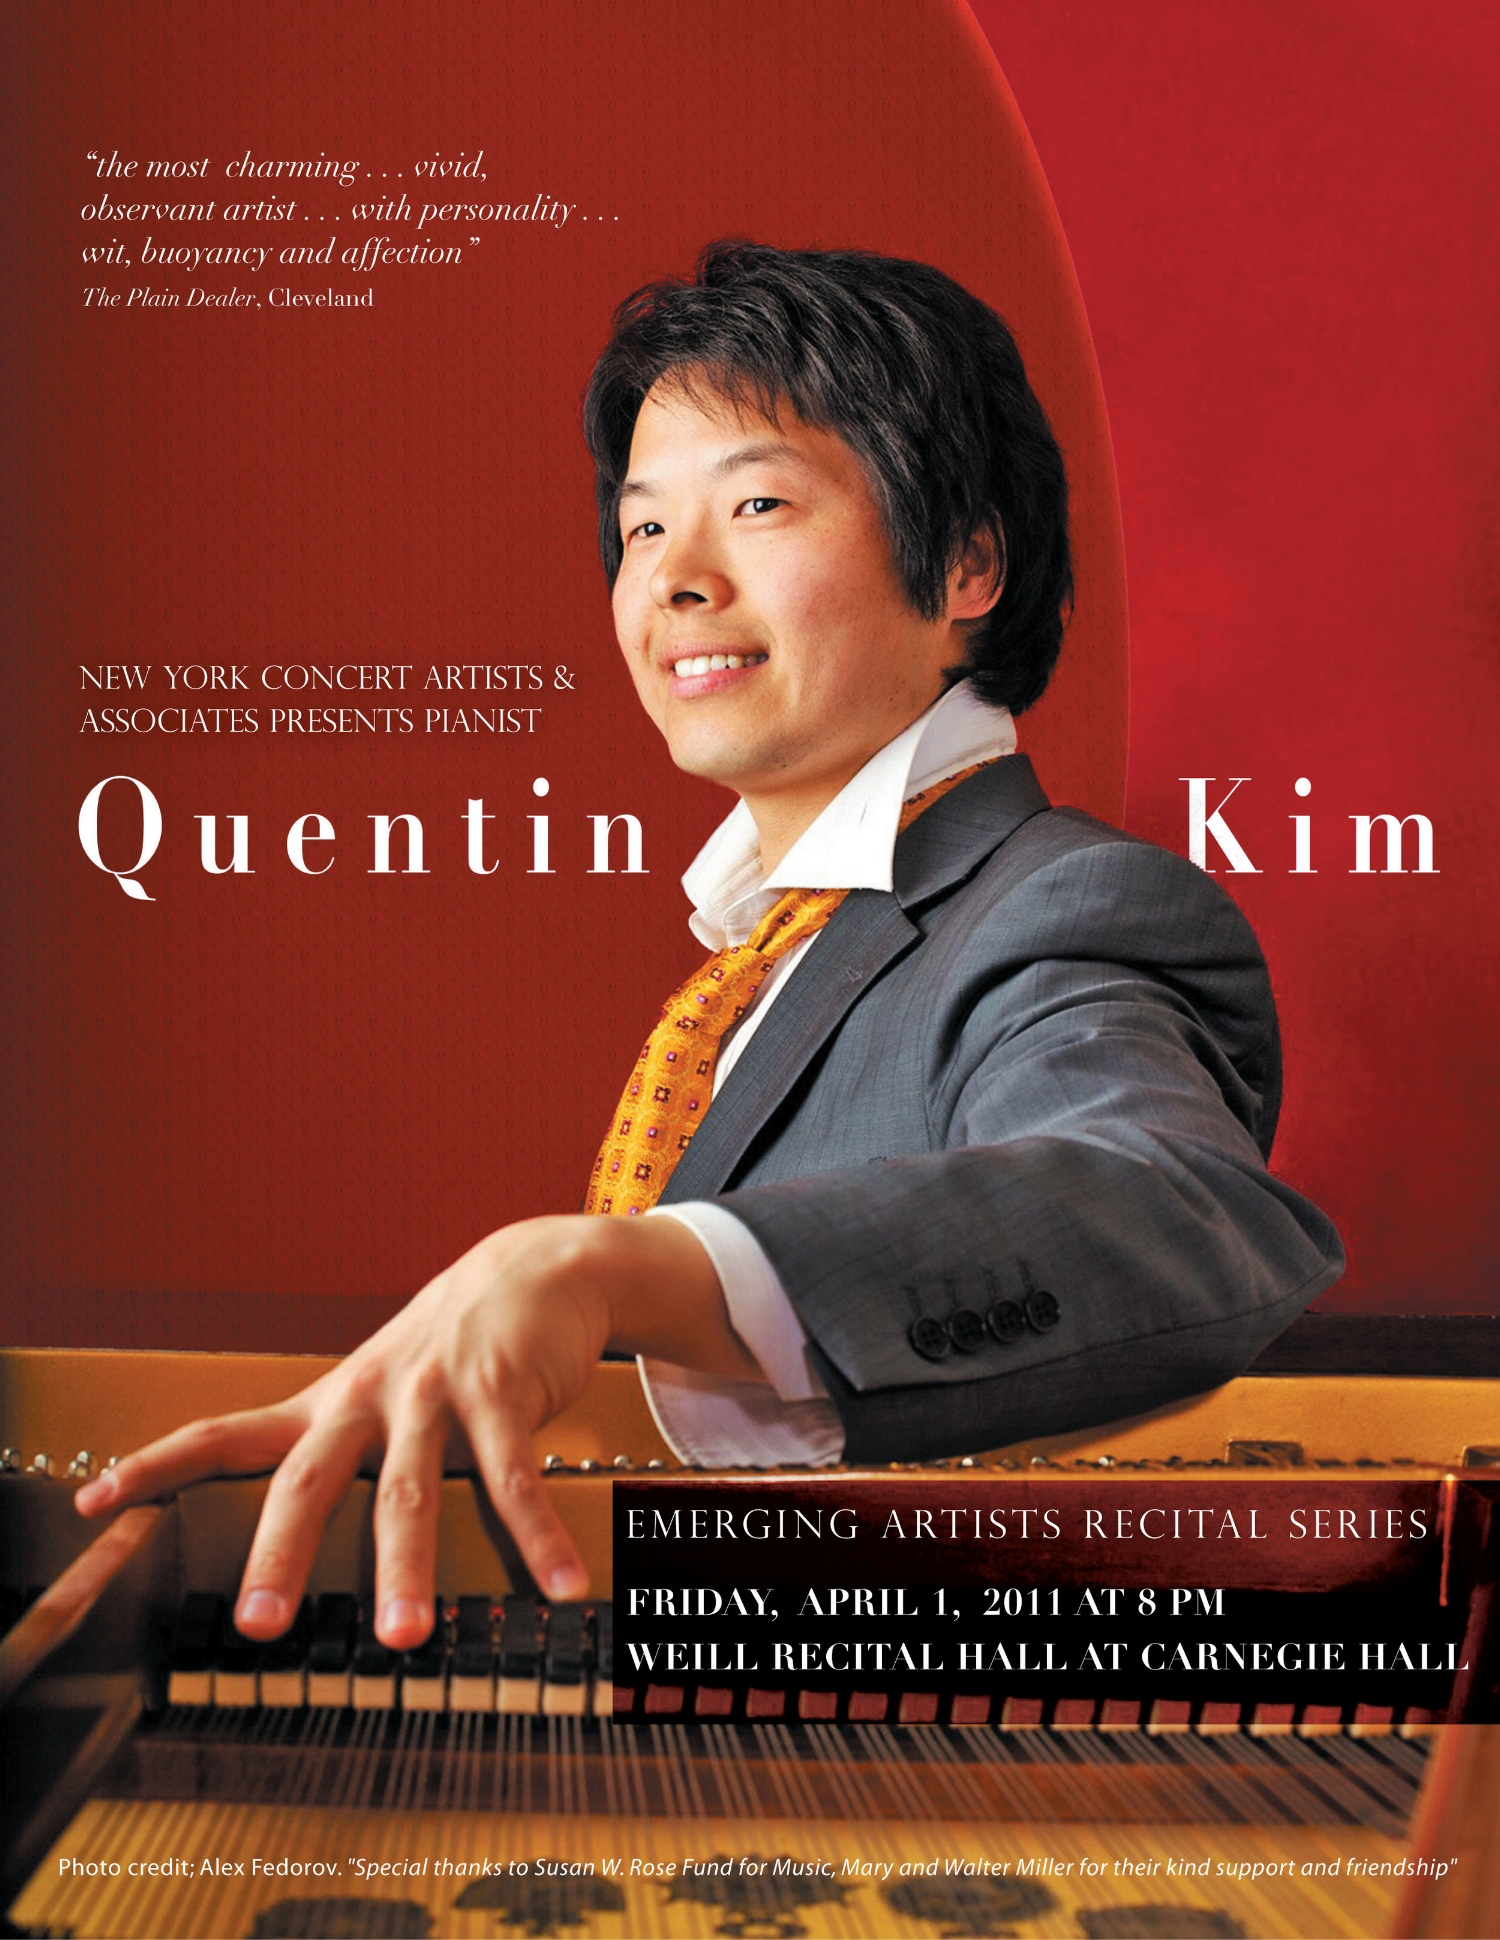 NYCA_QuentinKim_flyer_front.jpg